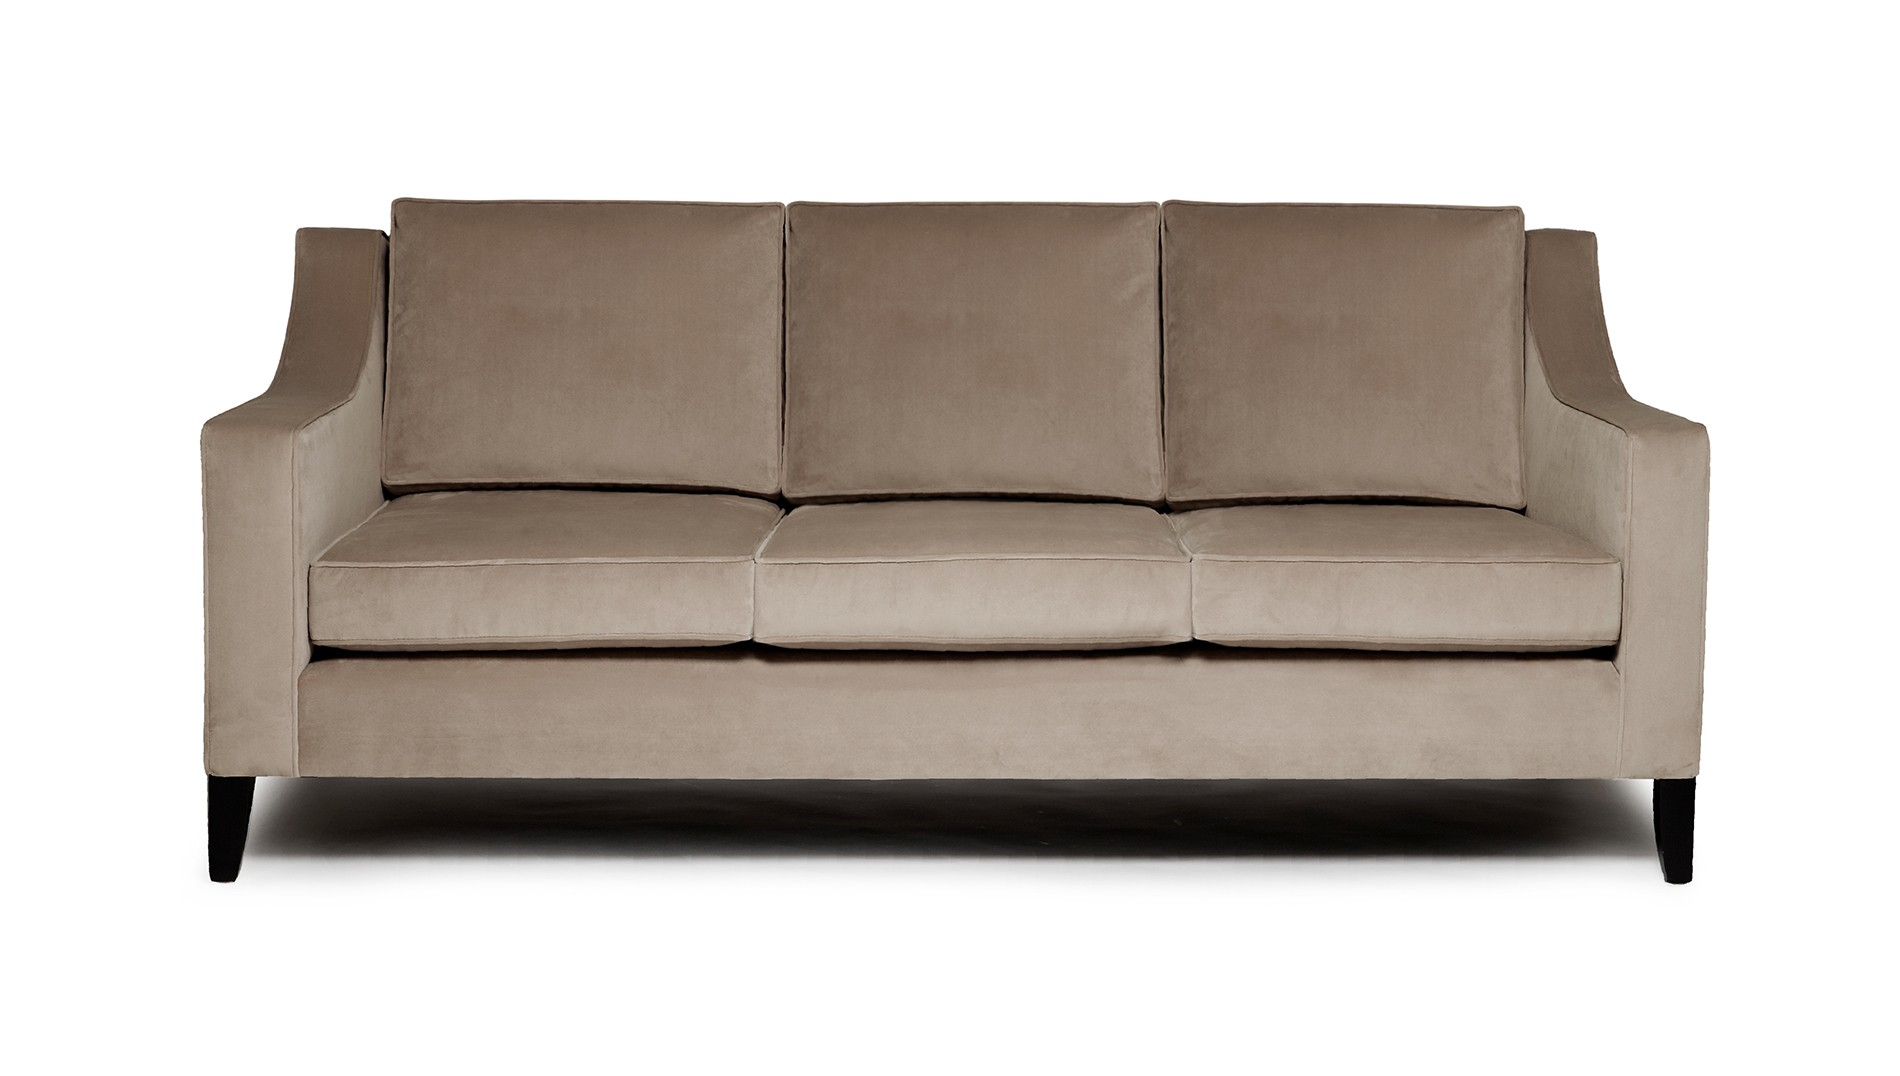 Accessorize your living rooms with Luxury Sofas